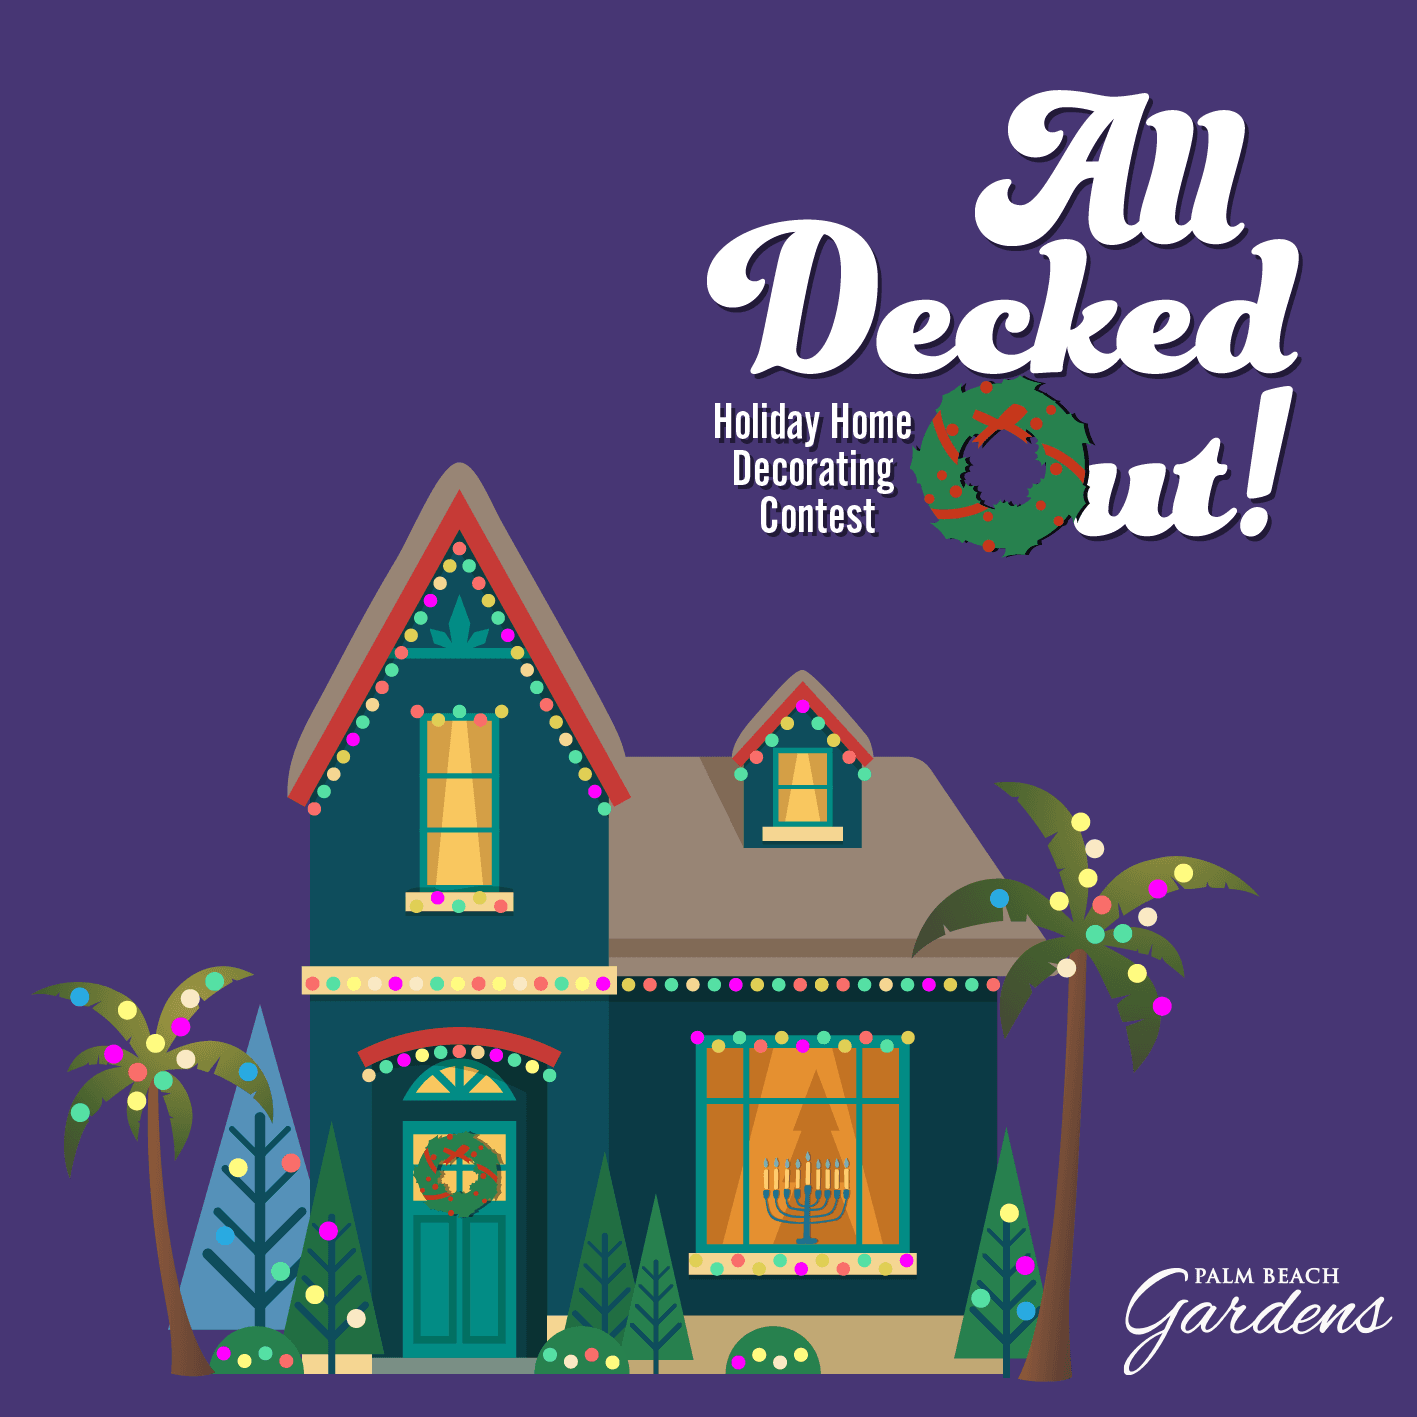 All Decked Out Holiday Home Decorating Contest